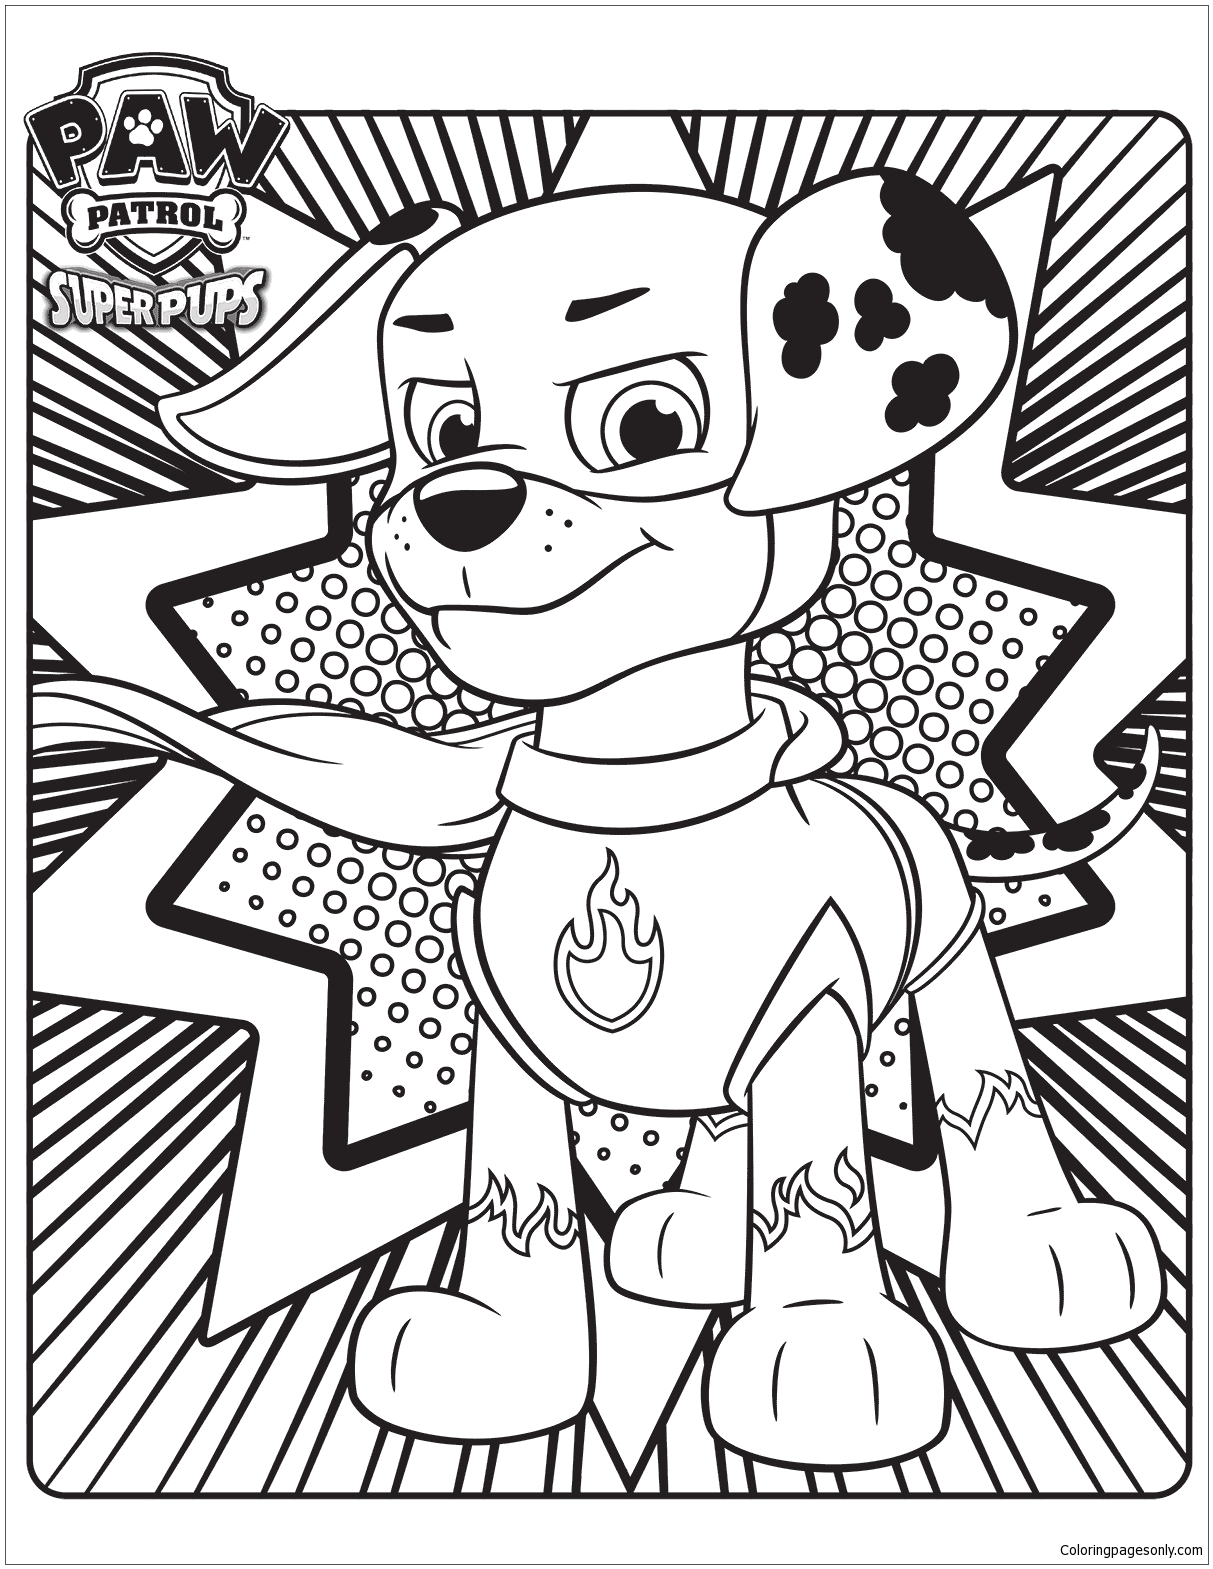 Paw Patrol Super Pups 3 Coloring Page - Free Coloring ...